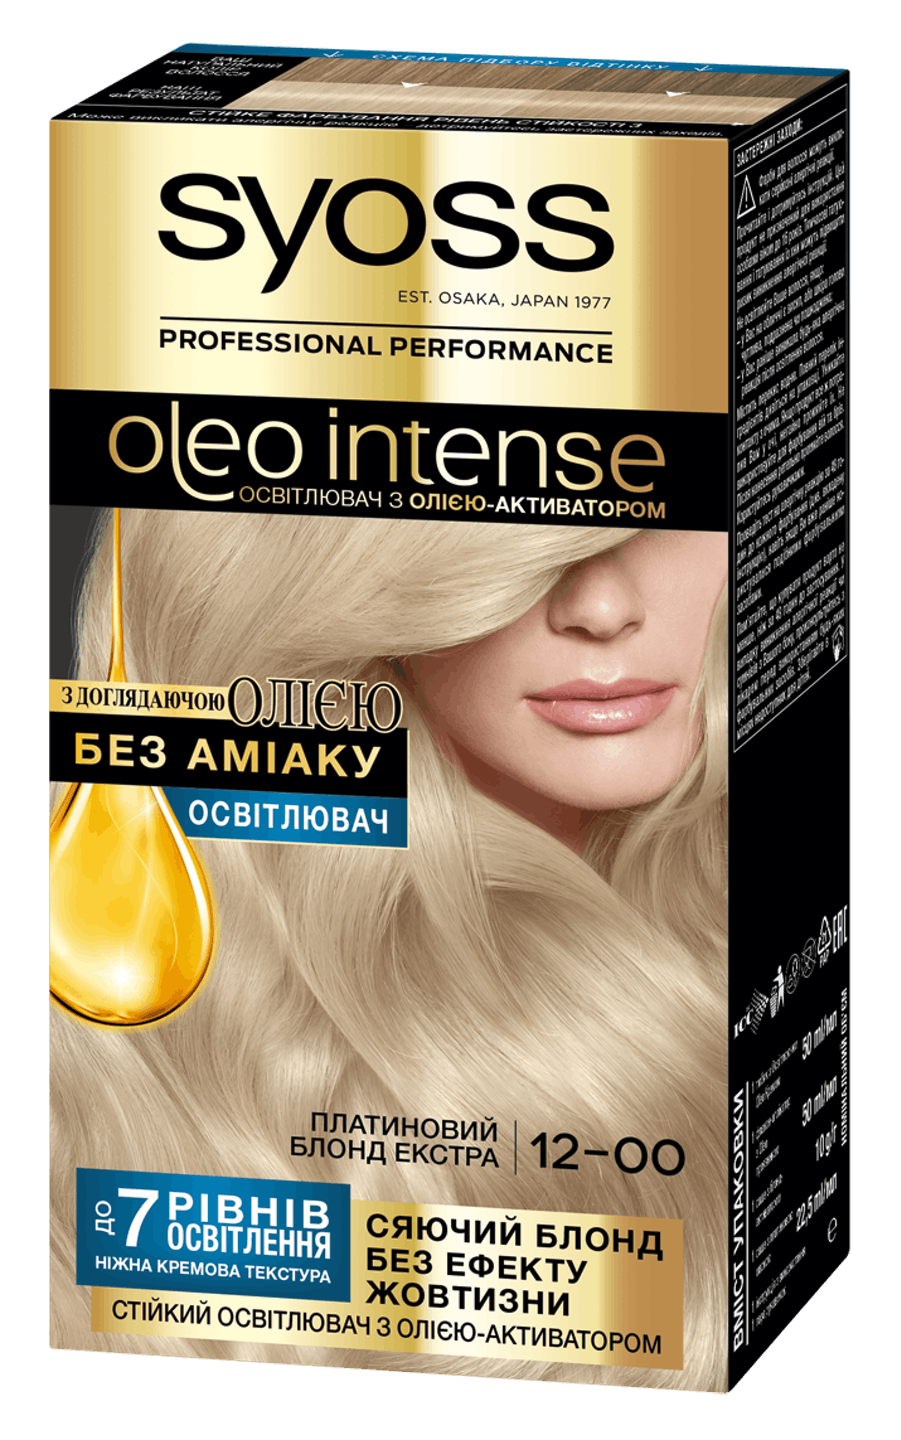 Syoss Oleo Intense Платиновий Блонд Екстра 12-00 shot pack